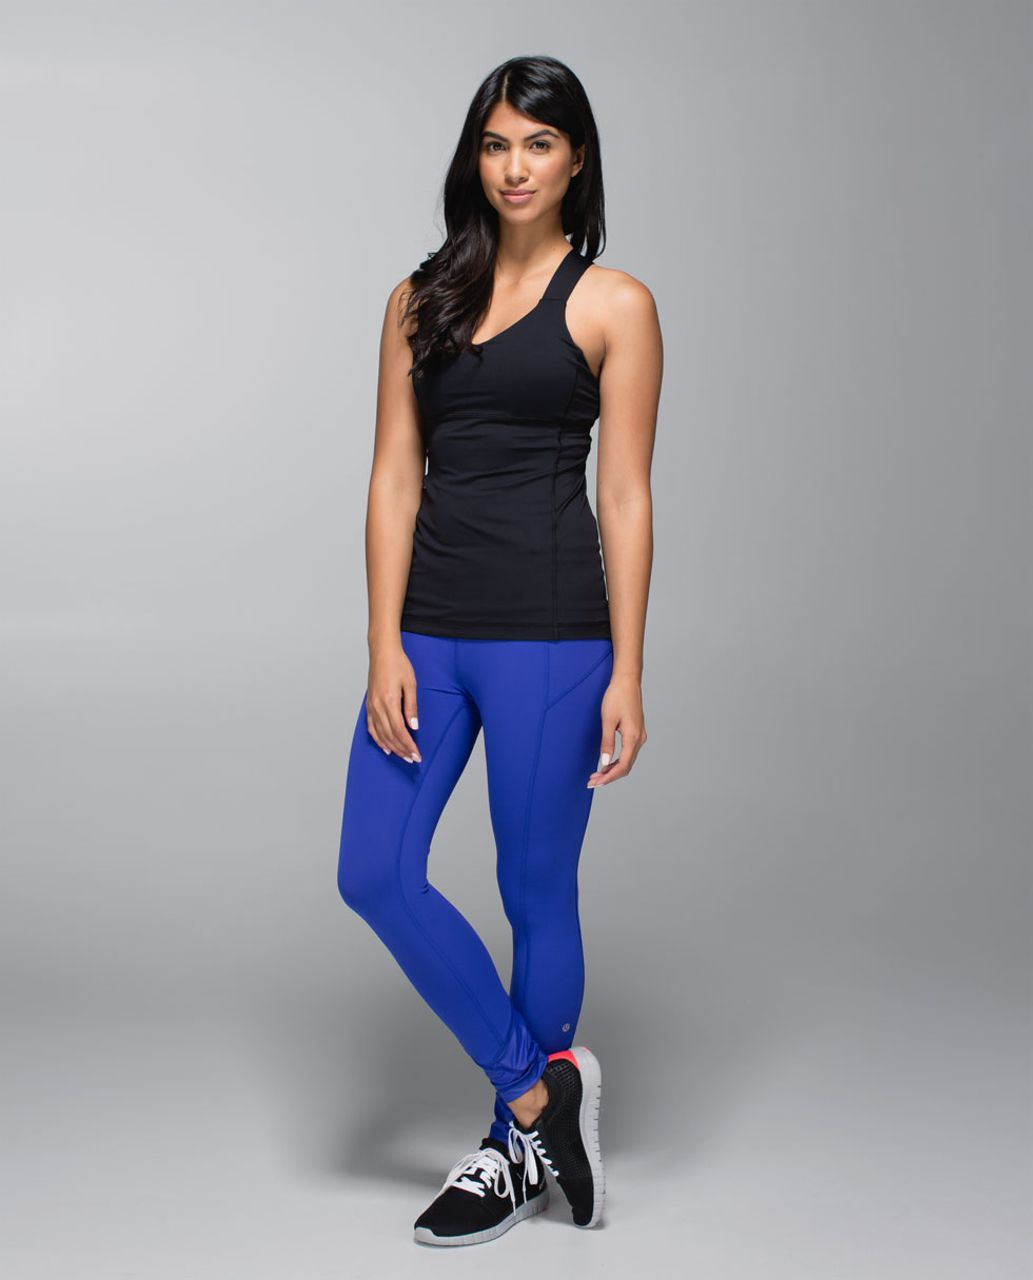 Lululemon Push Your Limits Tank - Black